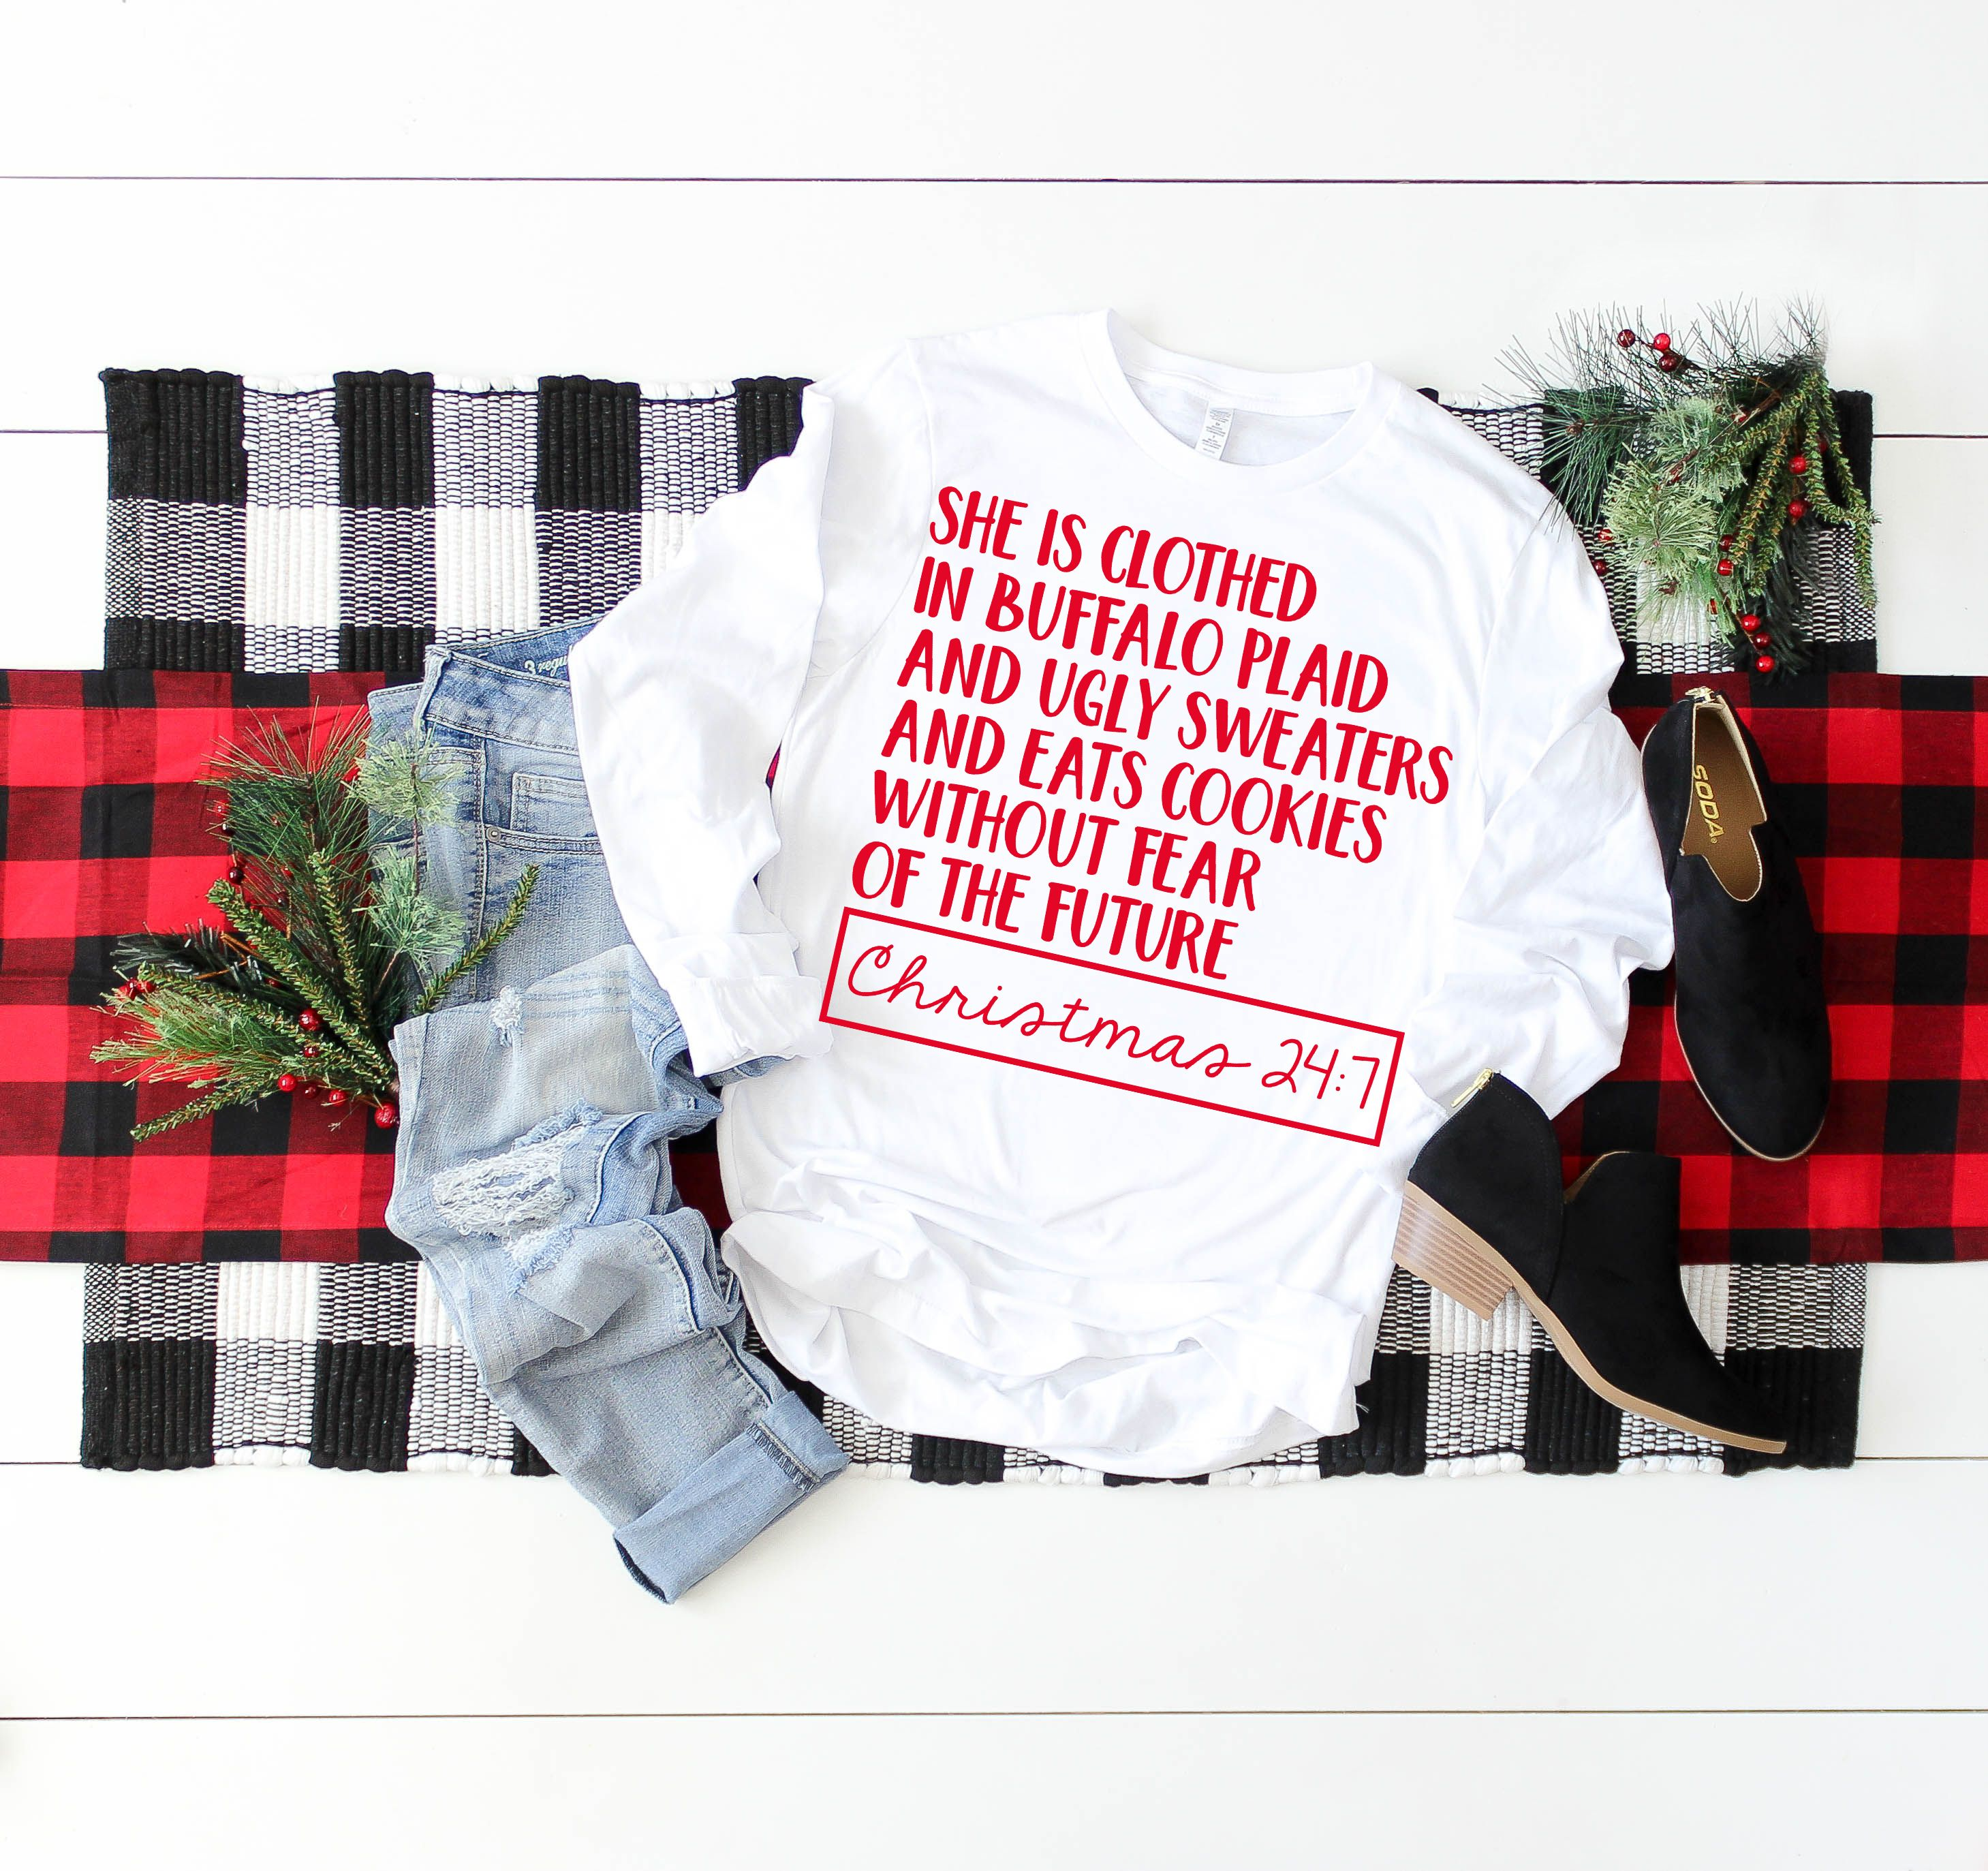 5589516f11 She is clothed in buffalo plaid and ugly sweaters and eats Christmas cookie  without fear of the future! HAHA!